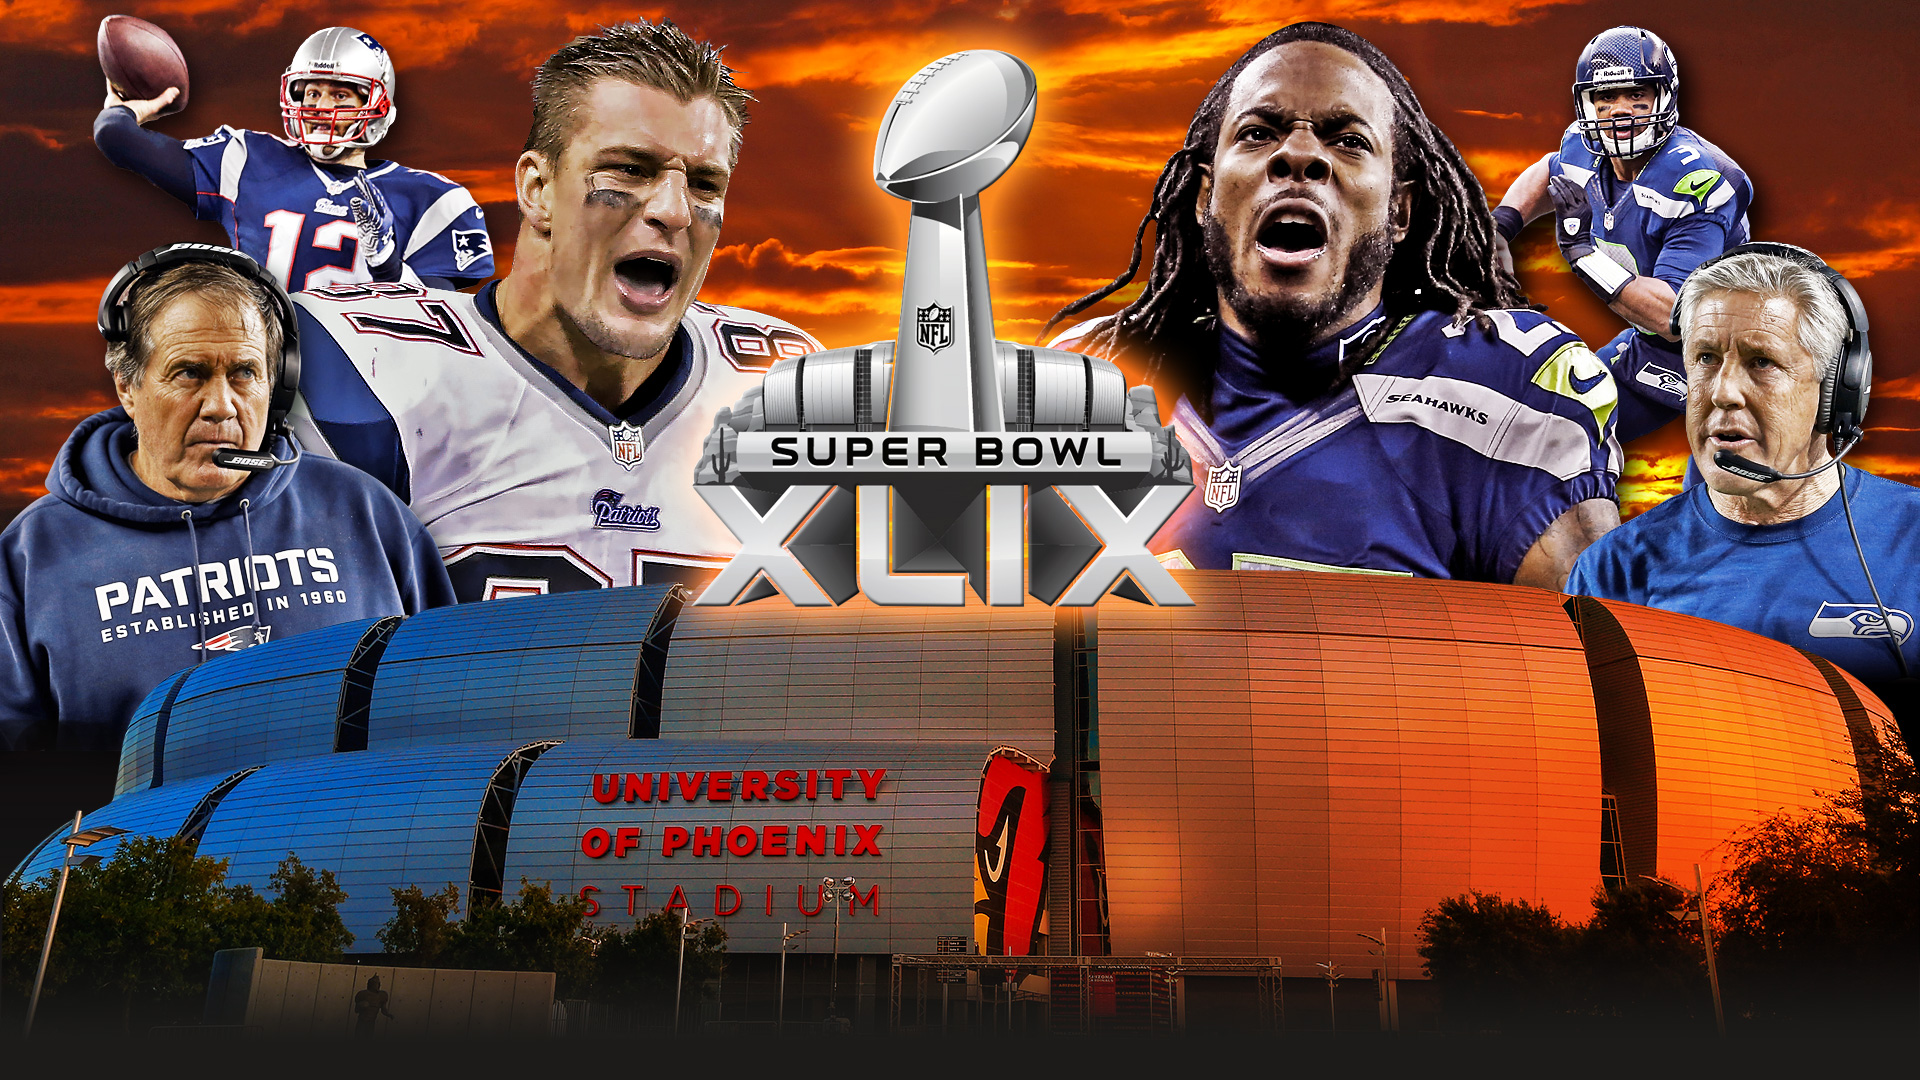 Super Bowl XLIX betting lines and picks – Defending champs in rare underdog role